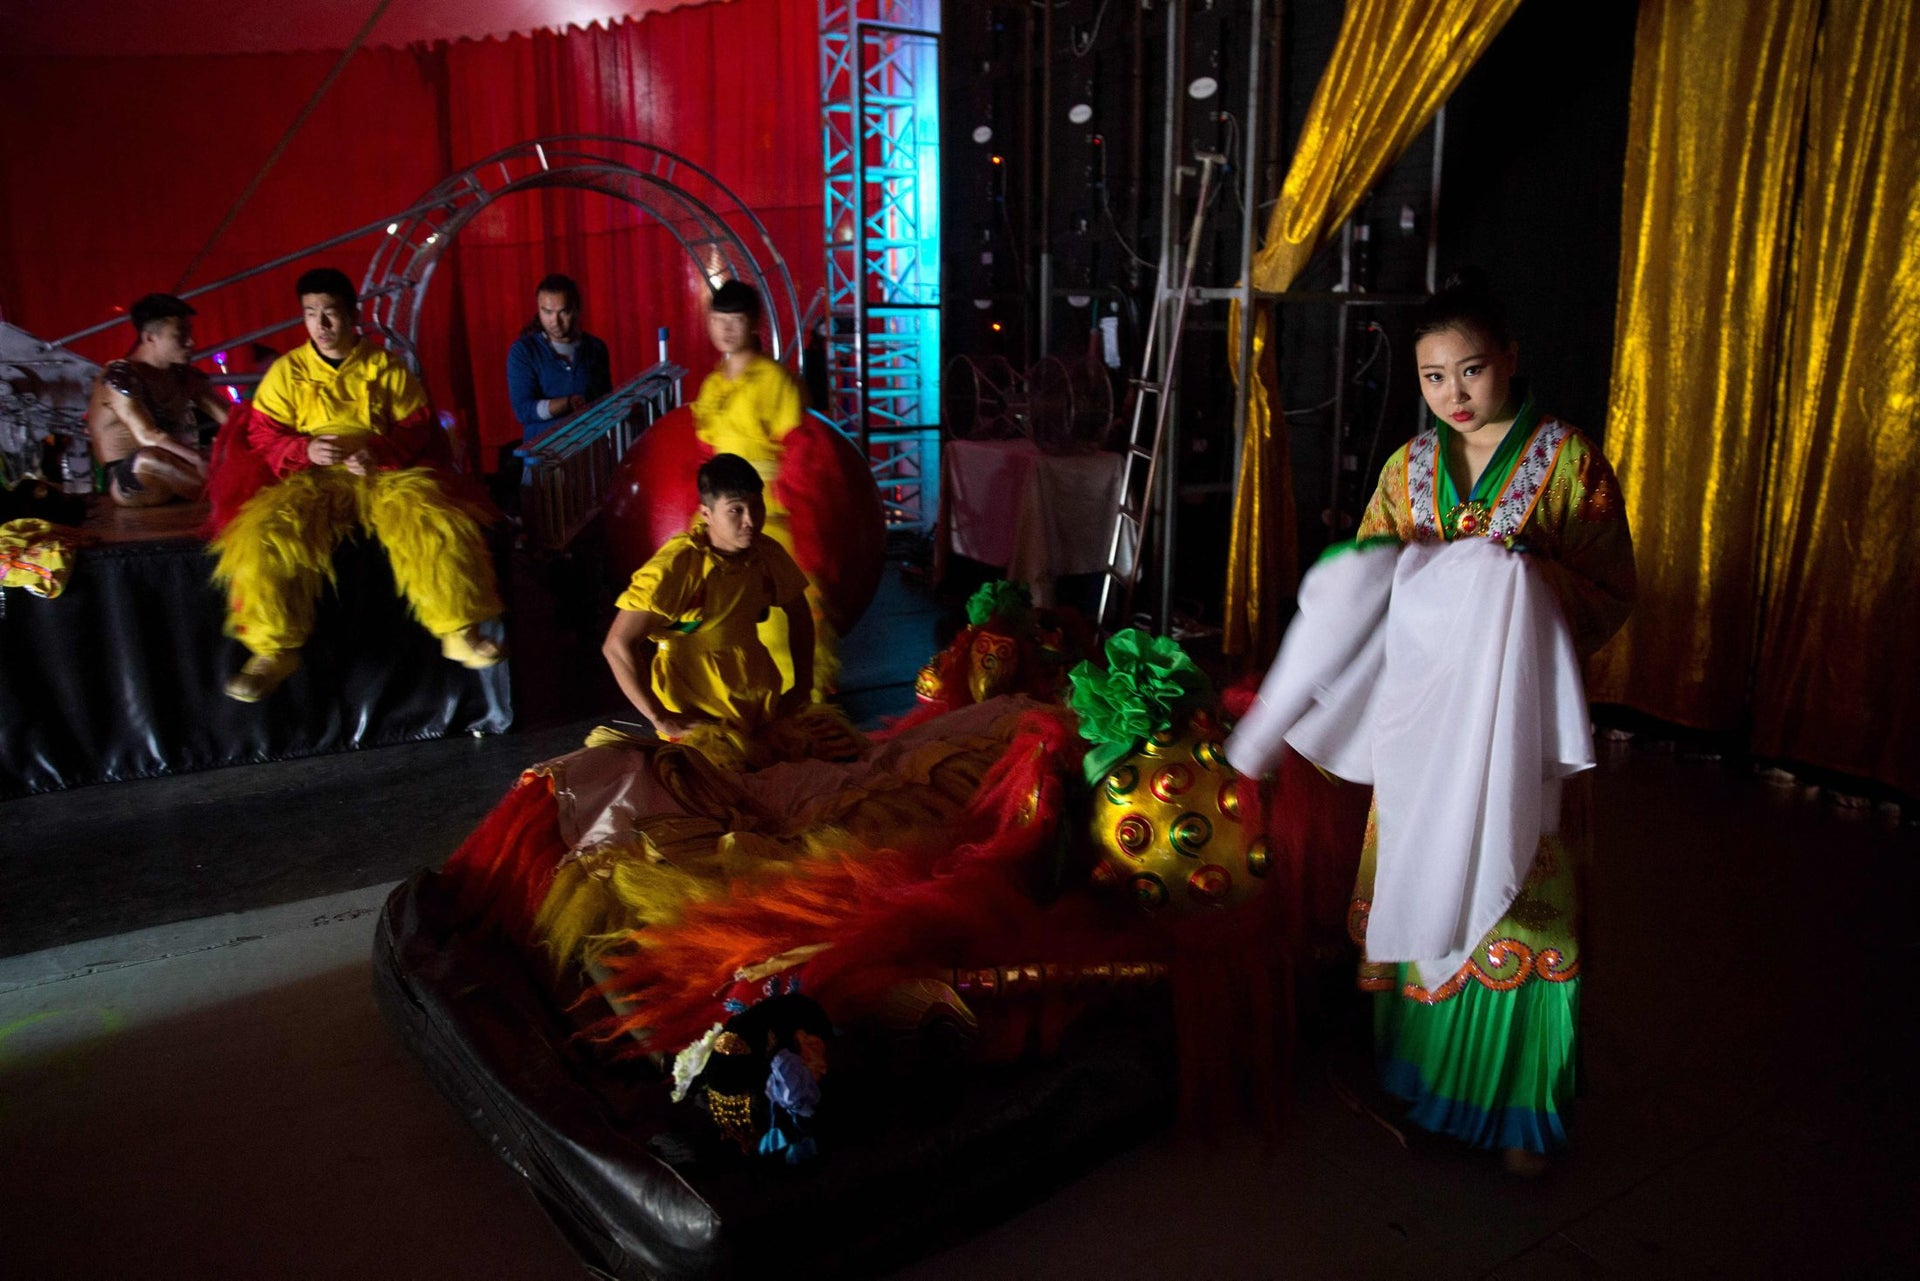 Chinese circus acrobats from the Hebei acrobatic troupe dressed up in costumes wait backstage prior to their performance in the northern Israeli port city of Haifa on March 29, 2016.